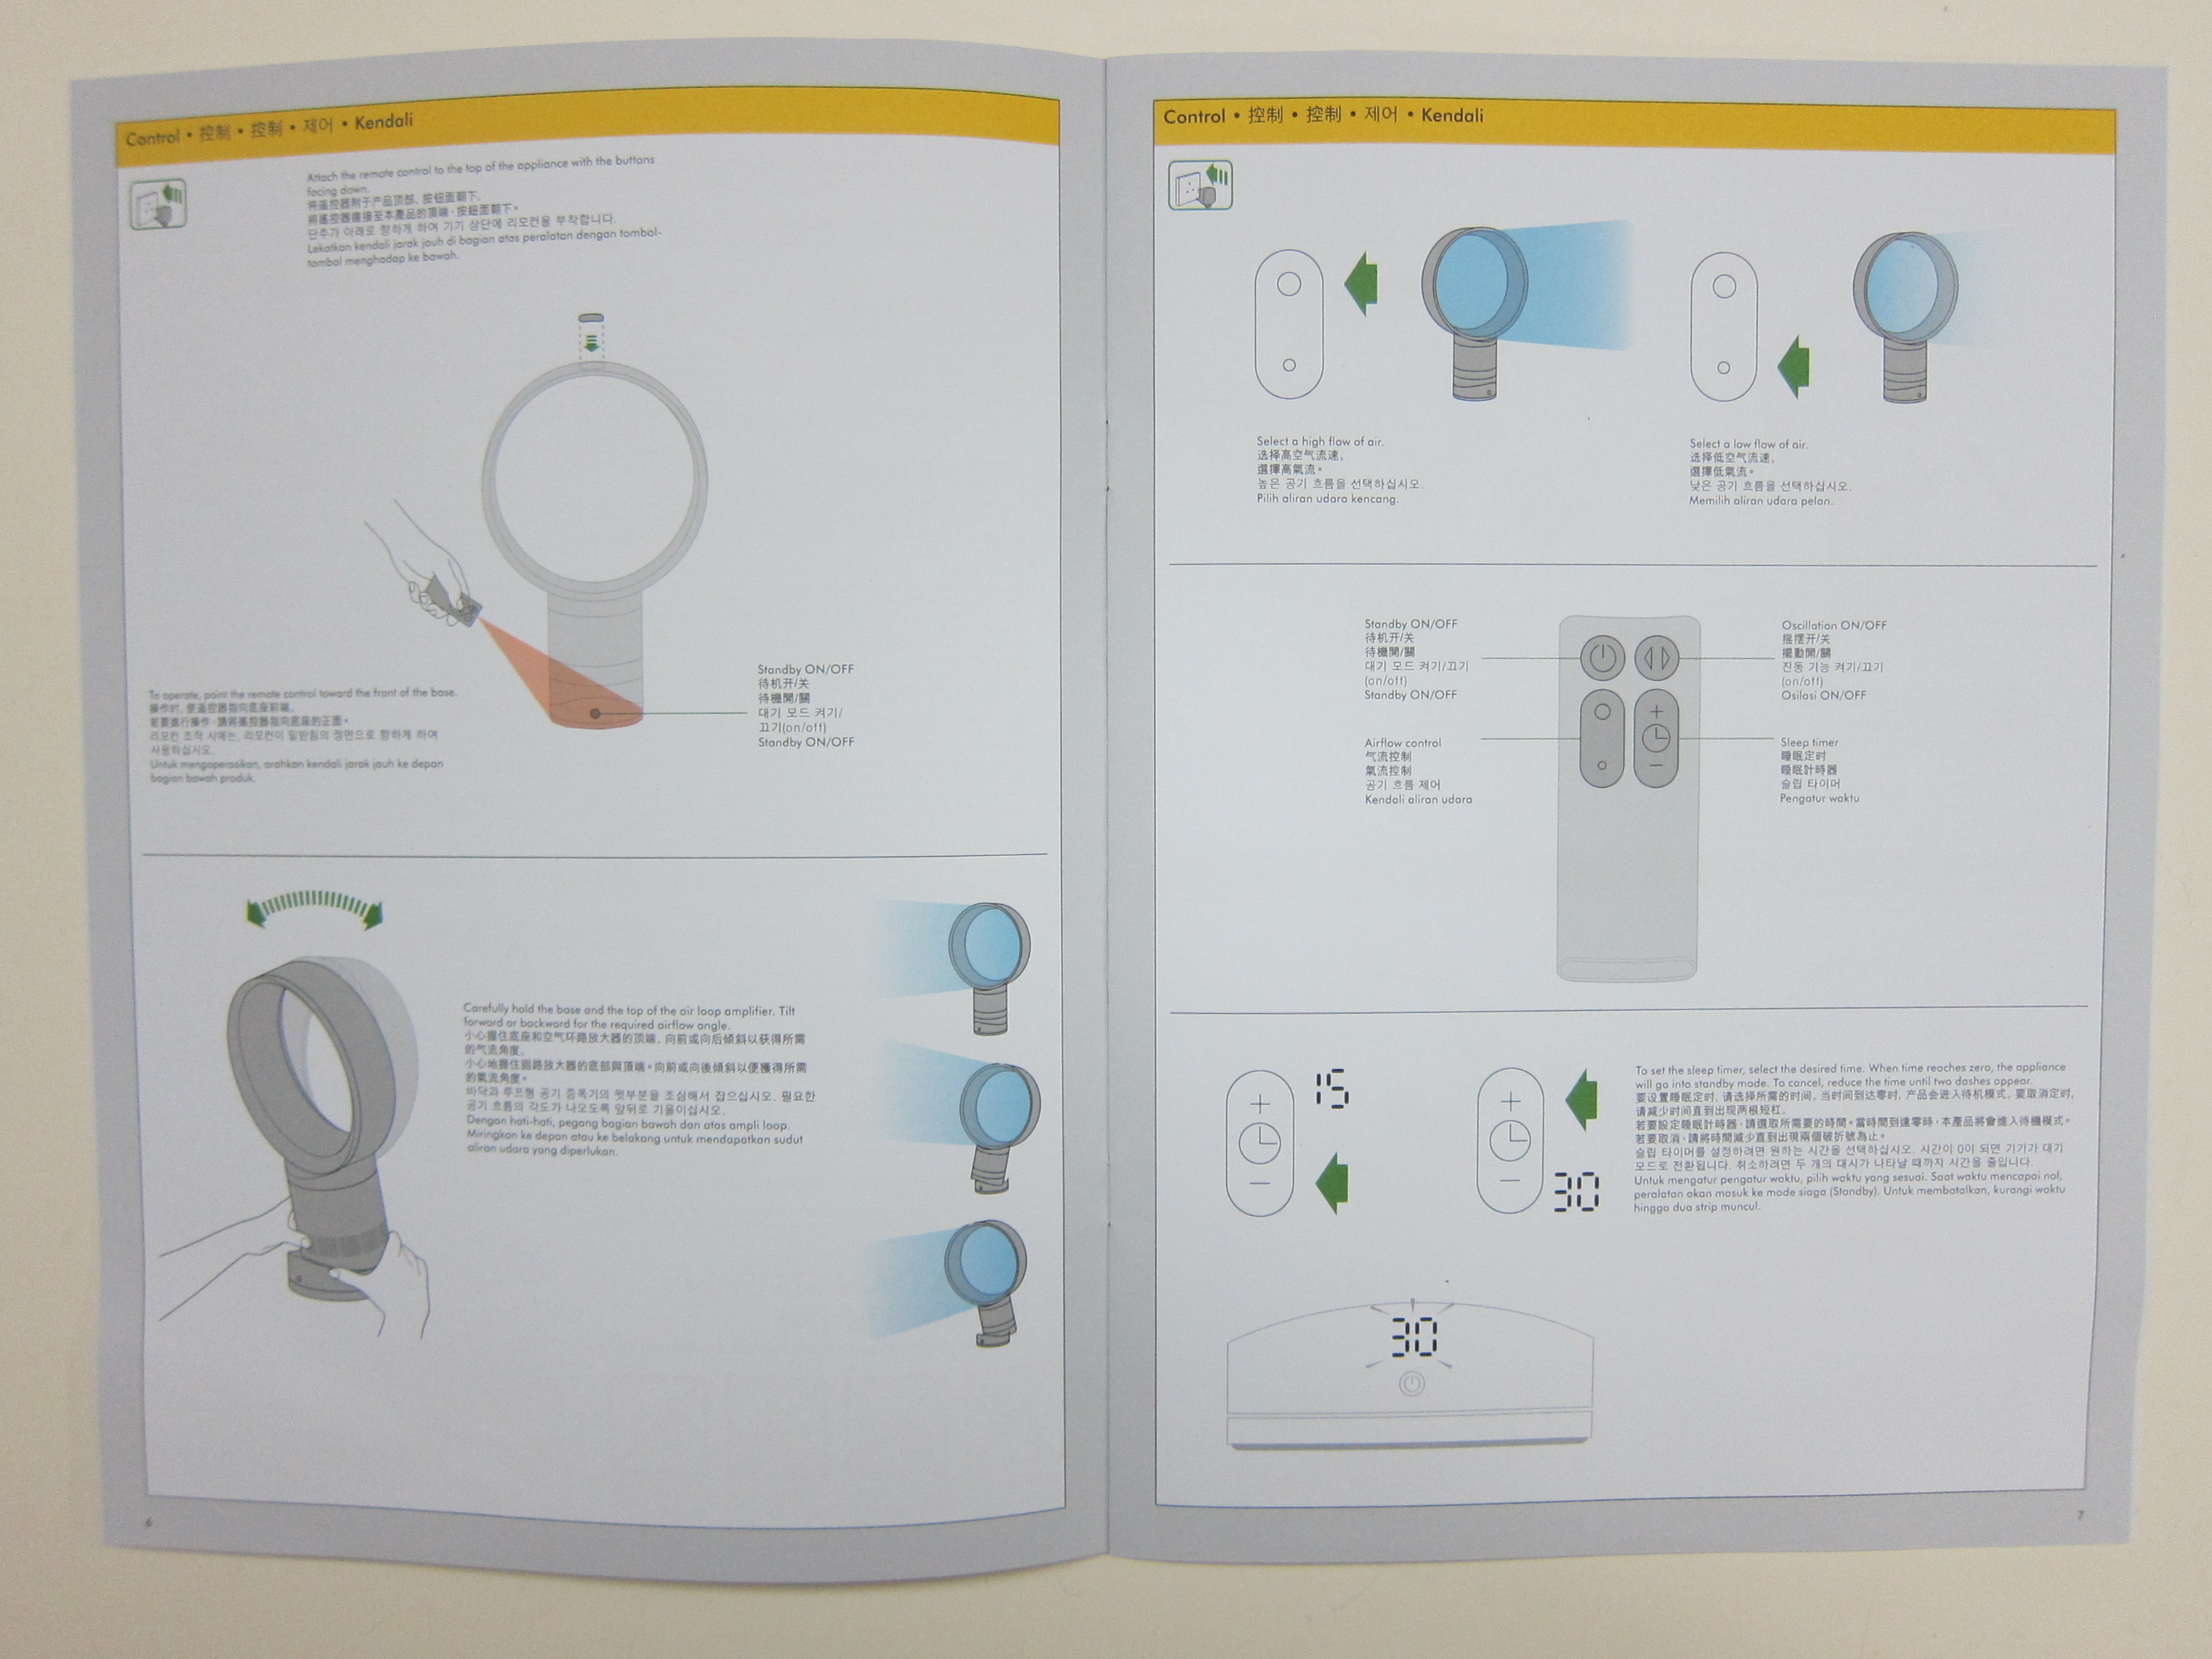 dyson hot and cool fan user manual